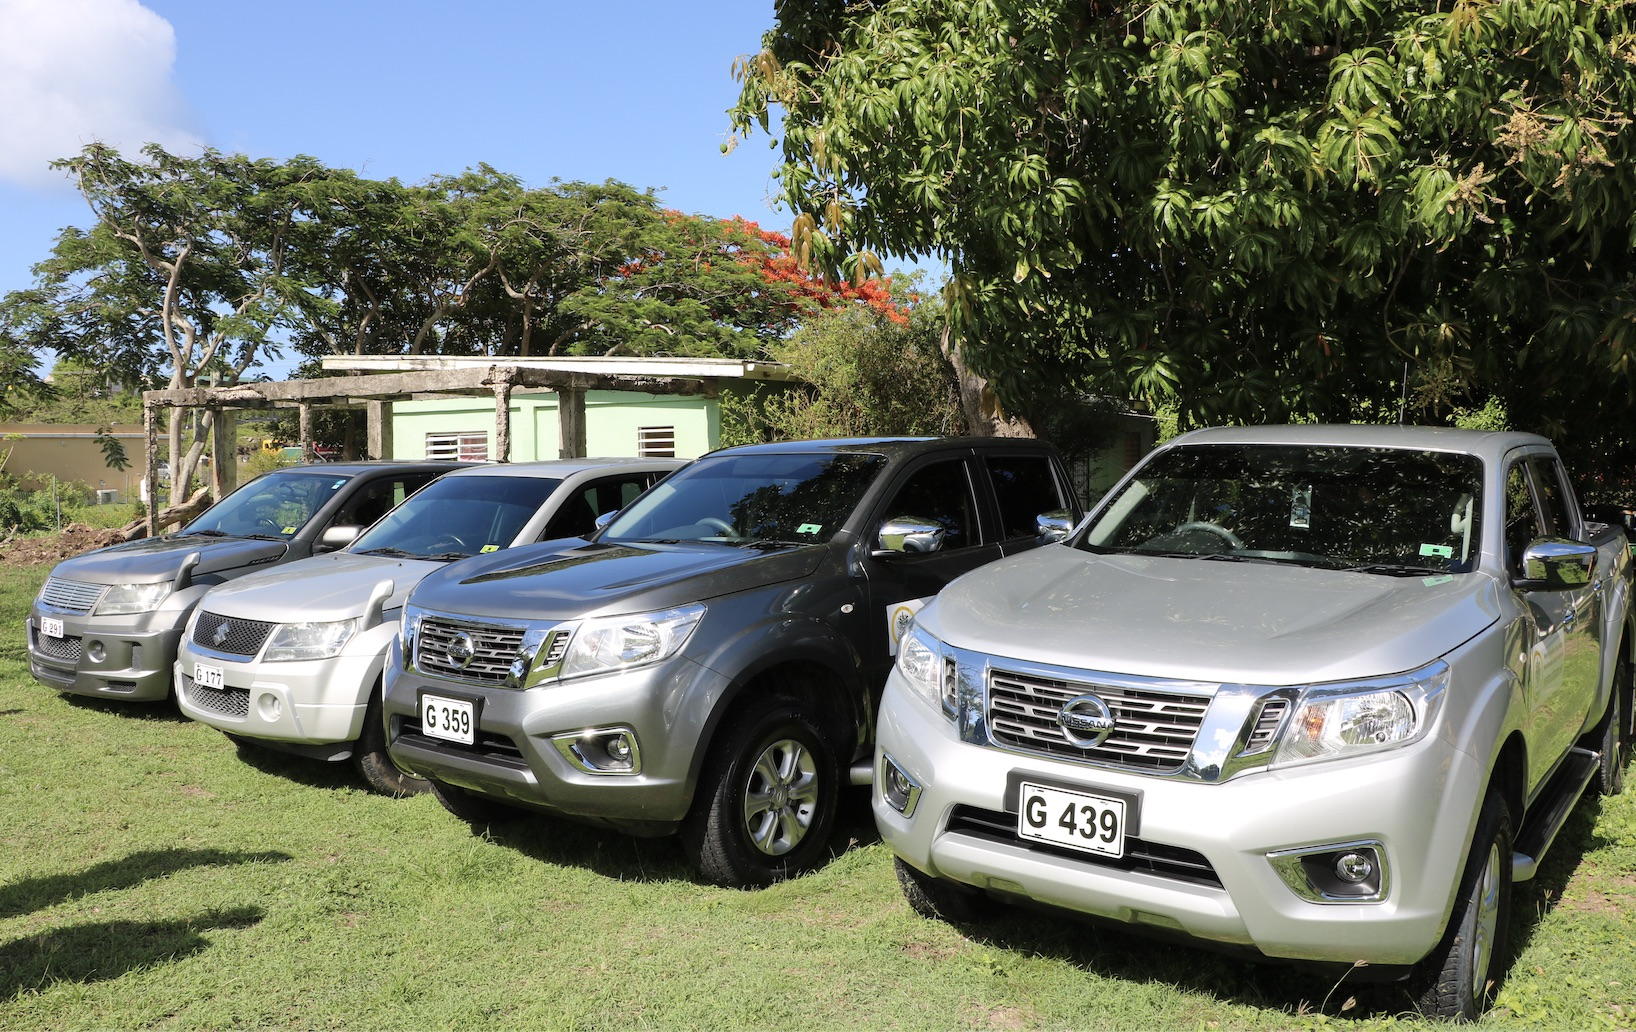 Four vehicles handed over to the Department of Agriculture by Hon. Alexis Jeffers, Deputy Premier of Nevis and Minister of Agriculture, on July 21, 2020, at the Prospect Agricultural Station for use in the support of the farming sector on Nevis